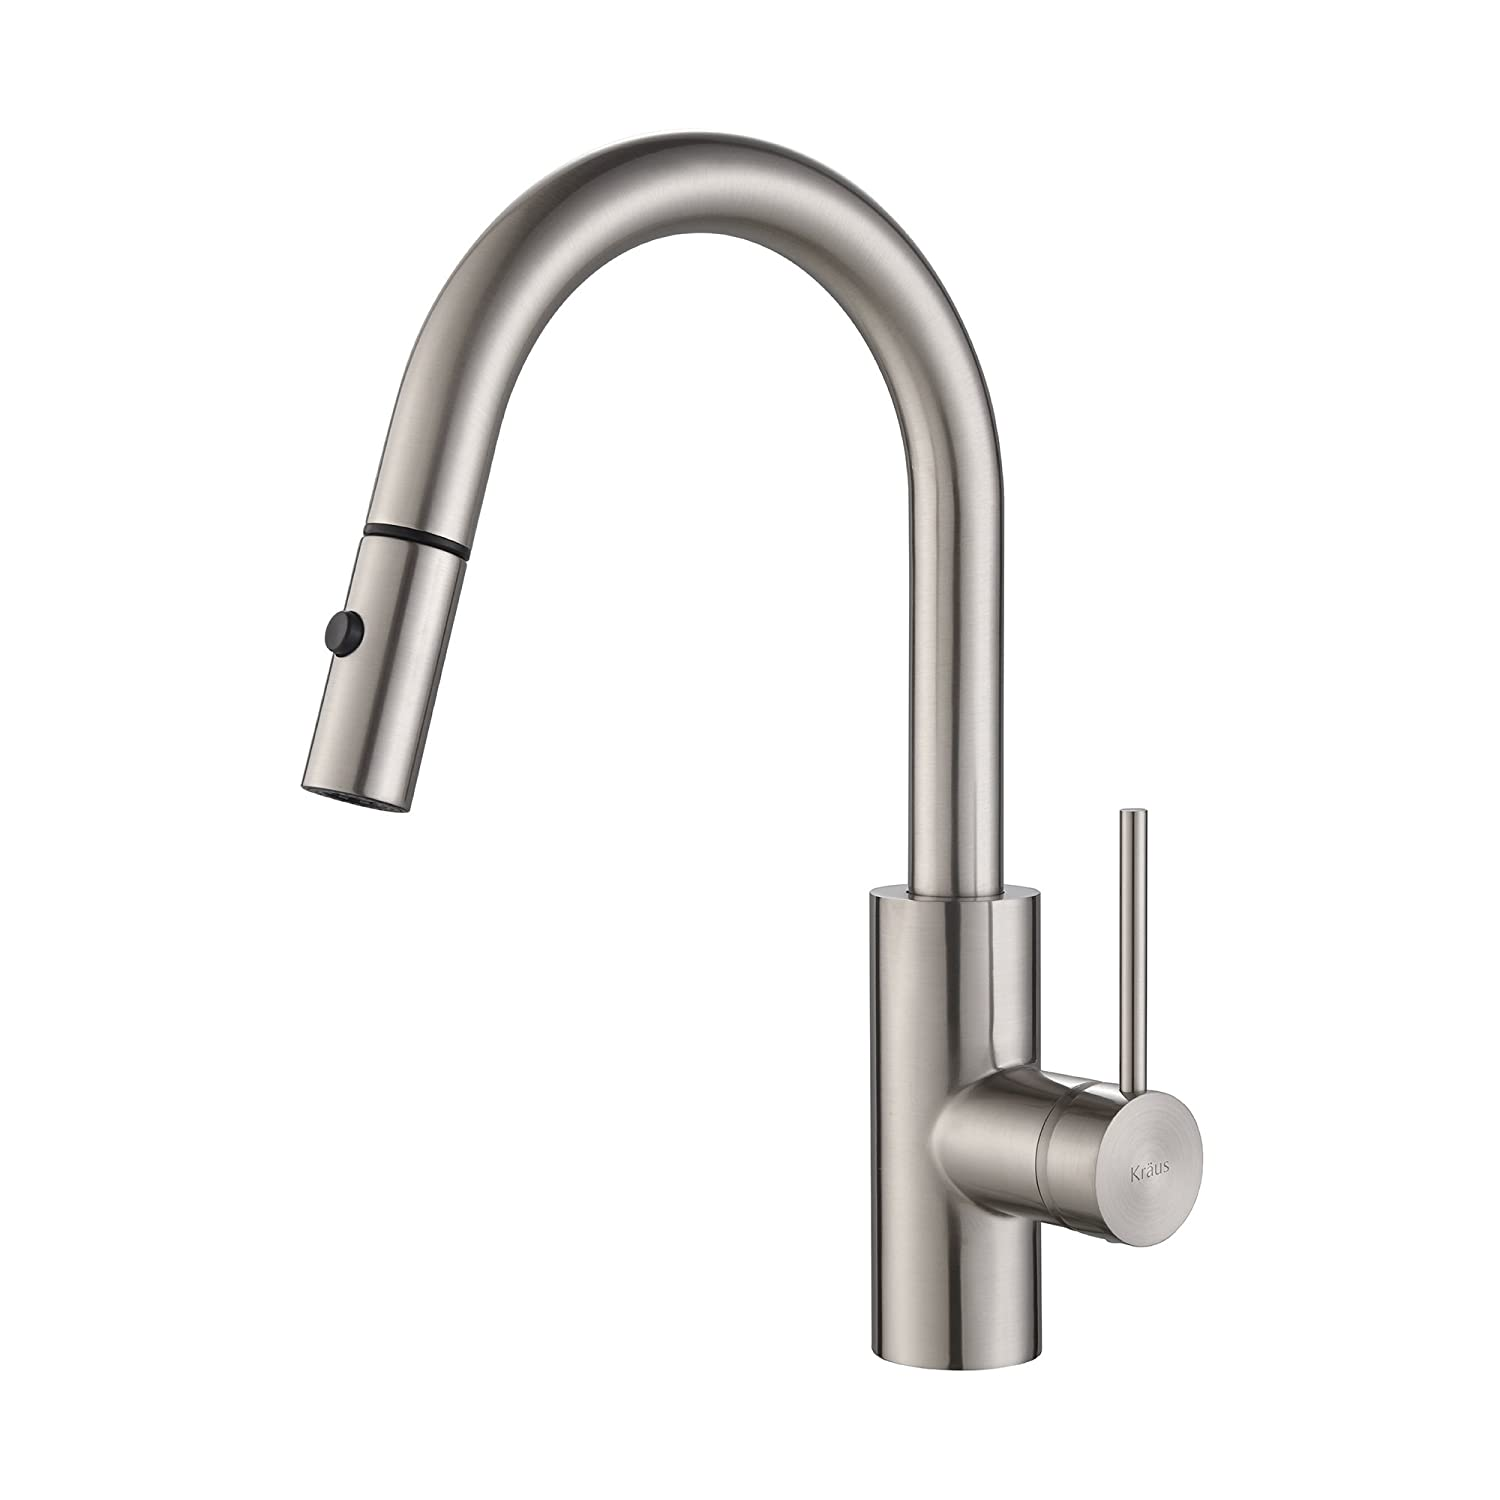 Kraus mateo modern kitchen faucet with coil pros and Designer kitchen faucets